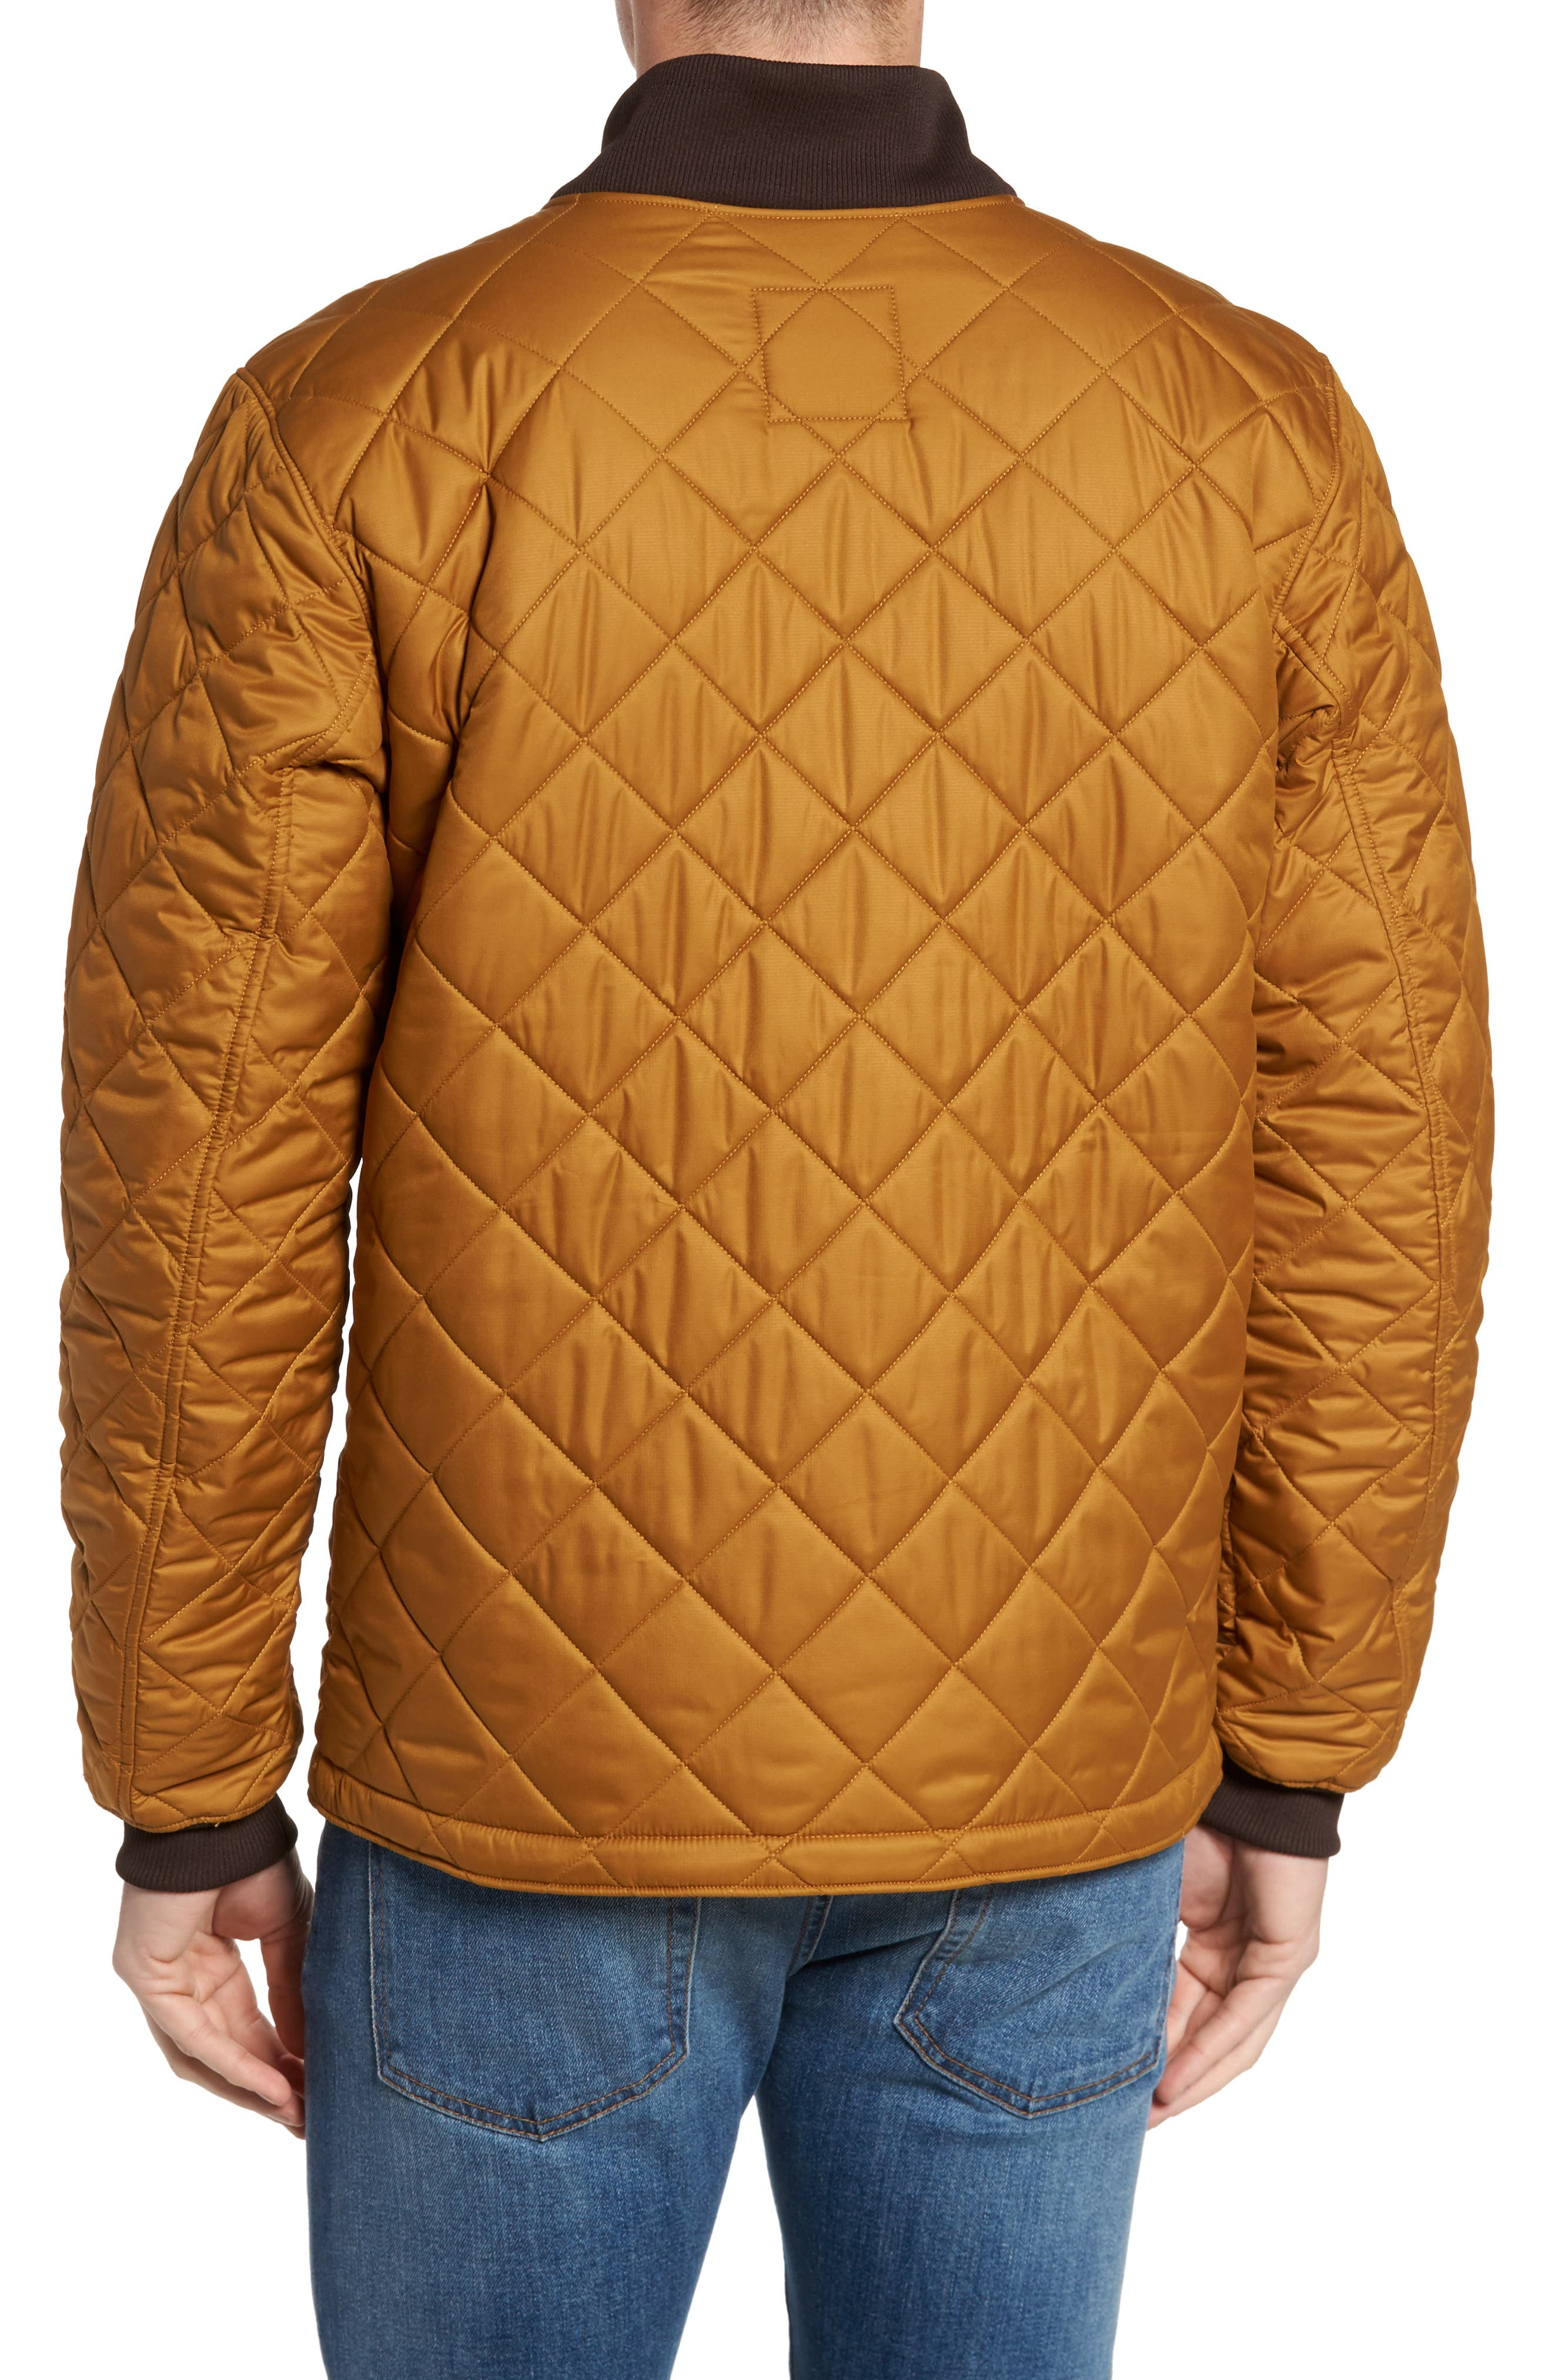 Cuchillo Insulated Jacket,                             Alternate thumbnail 2, color,                             Golden Brown